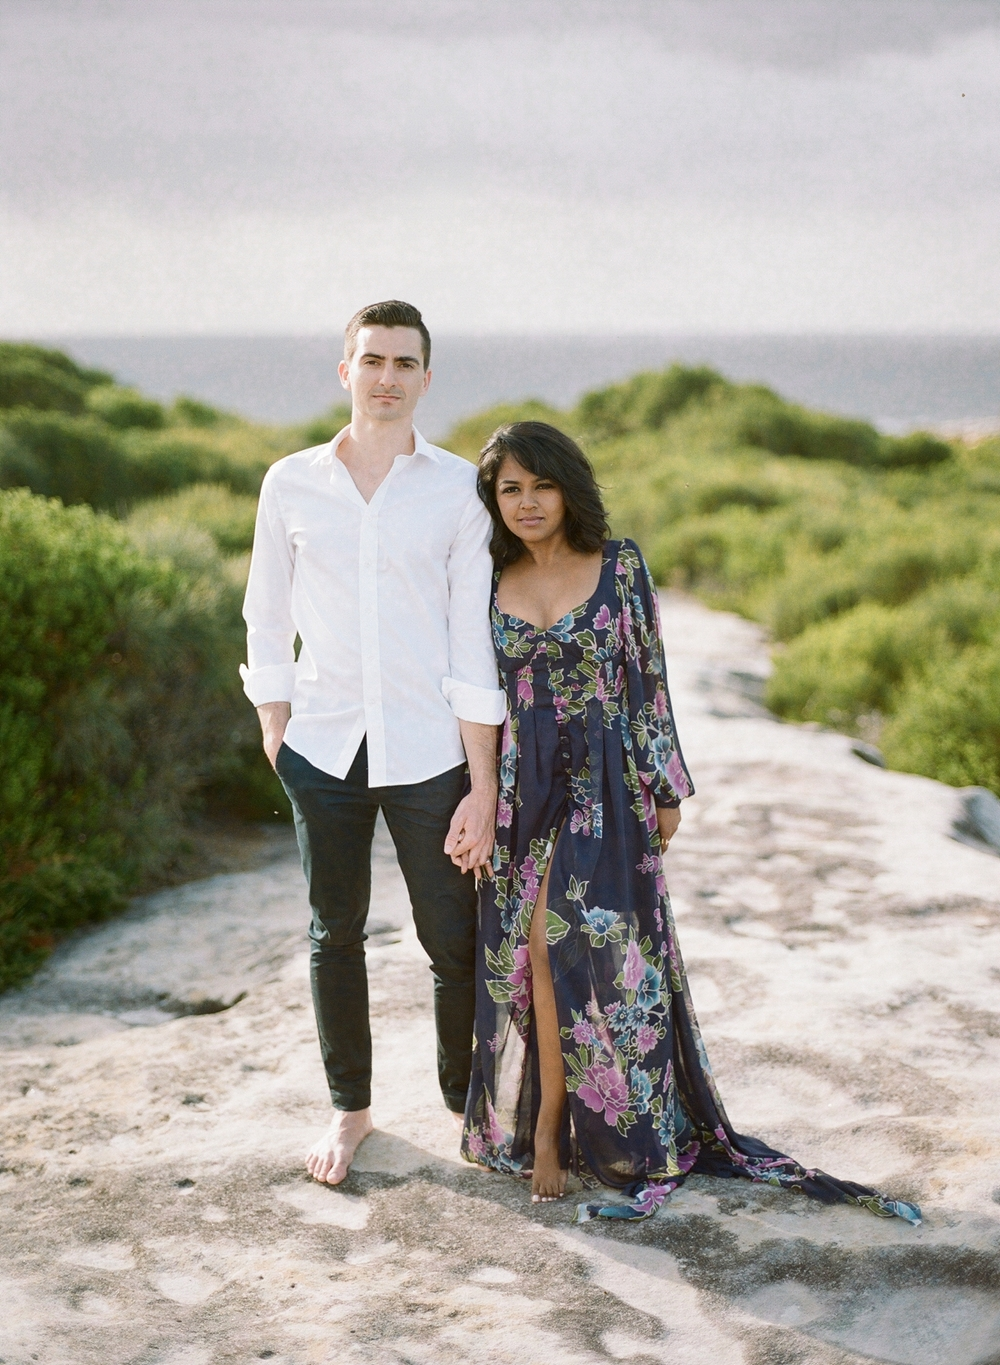 Coastal Sydney couples session by Mr Edwards Photography_0737_1173.jpg